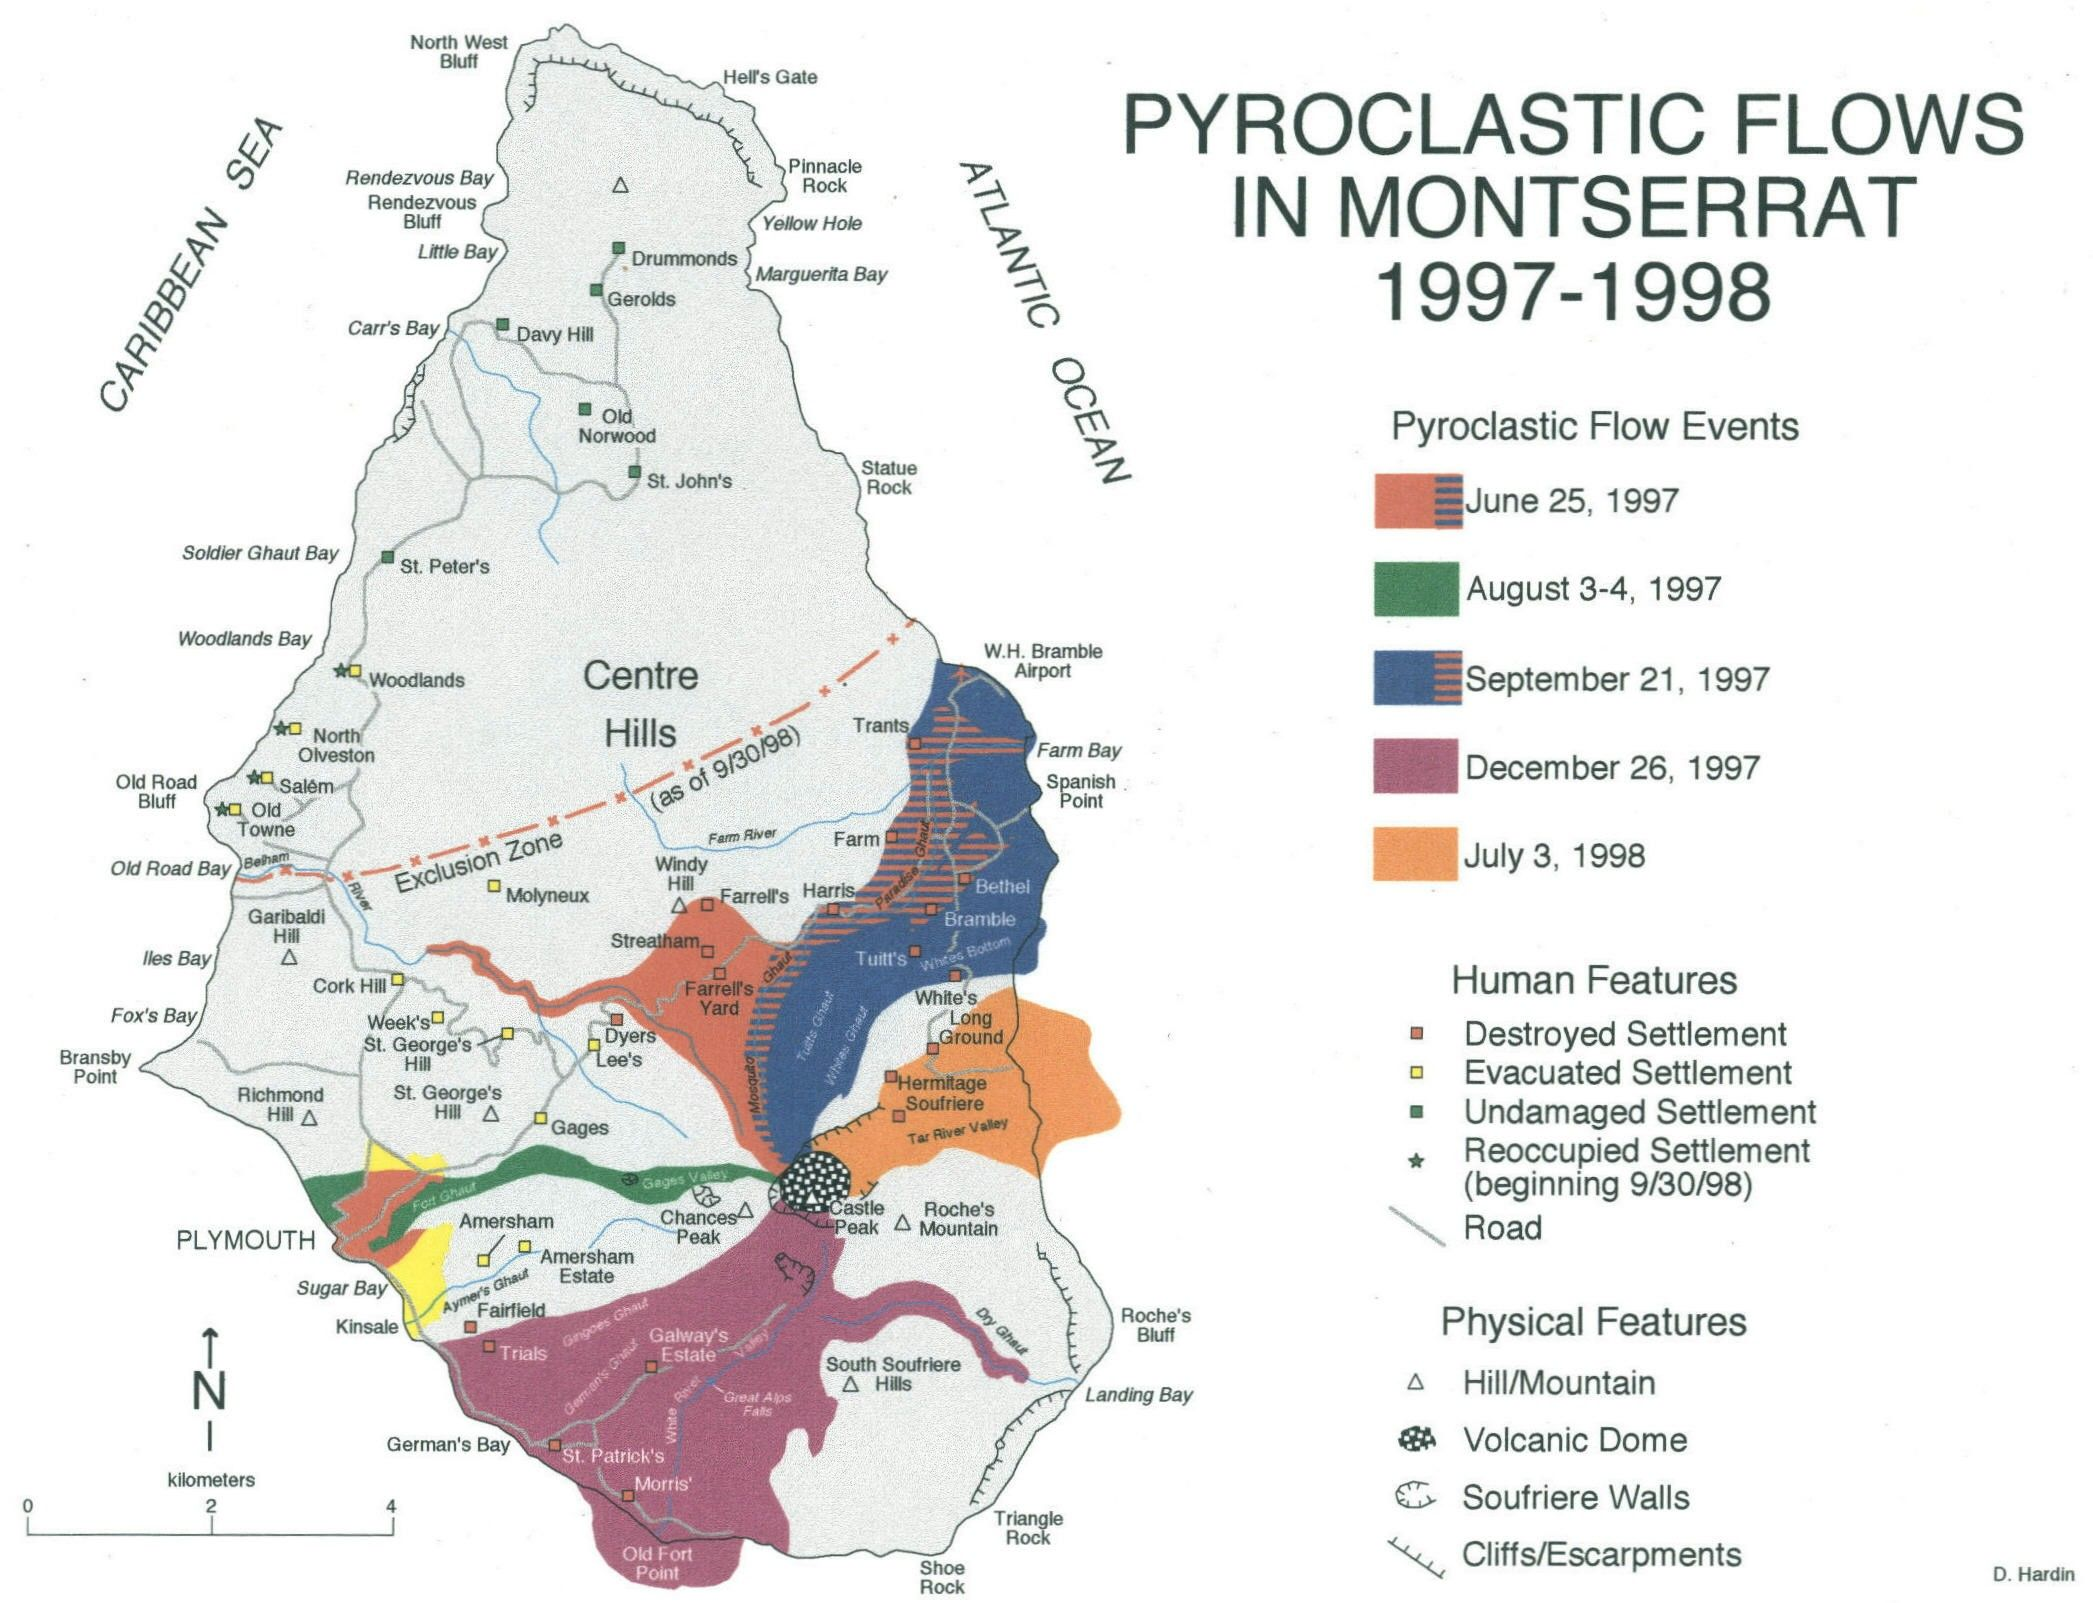 Prefijo Meso Map Of Montserrat Showing The Pyroclastic Flows Of The